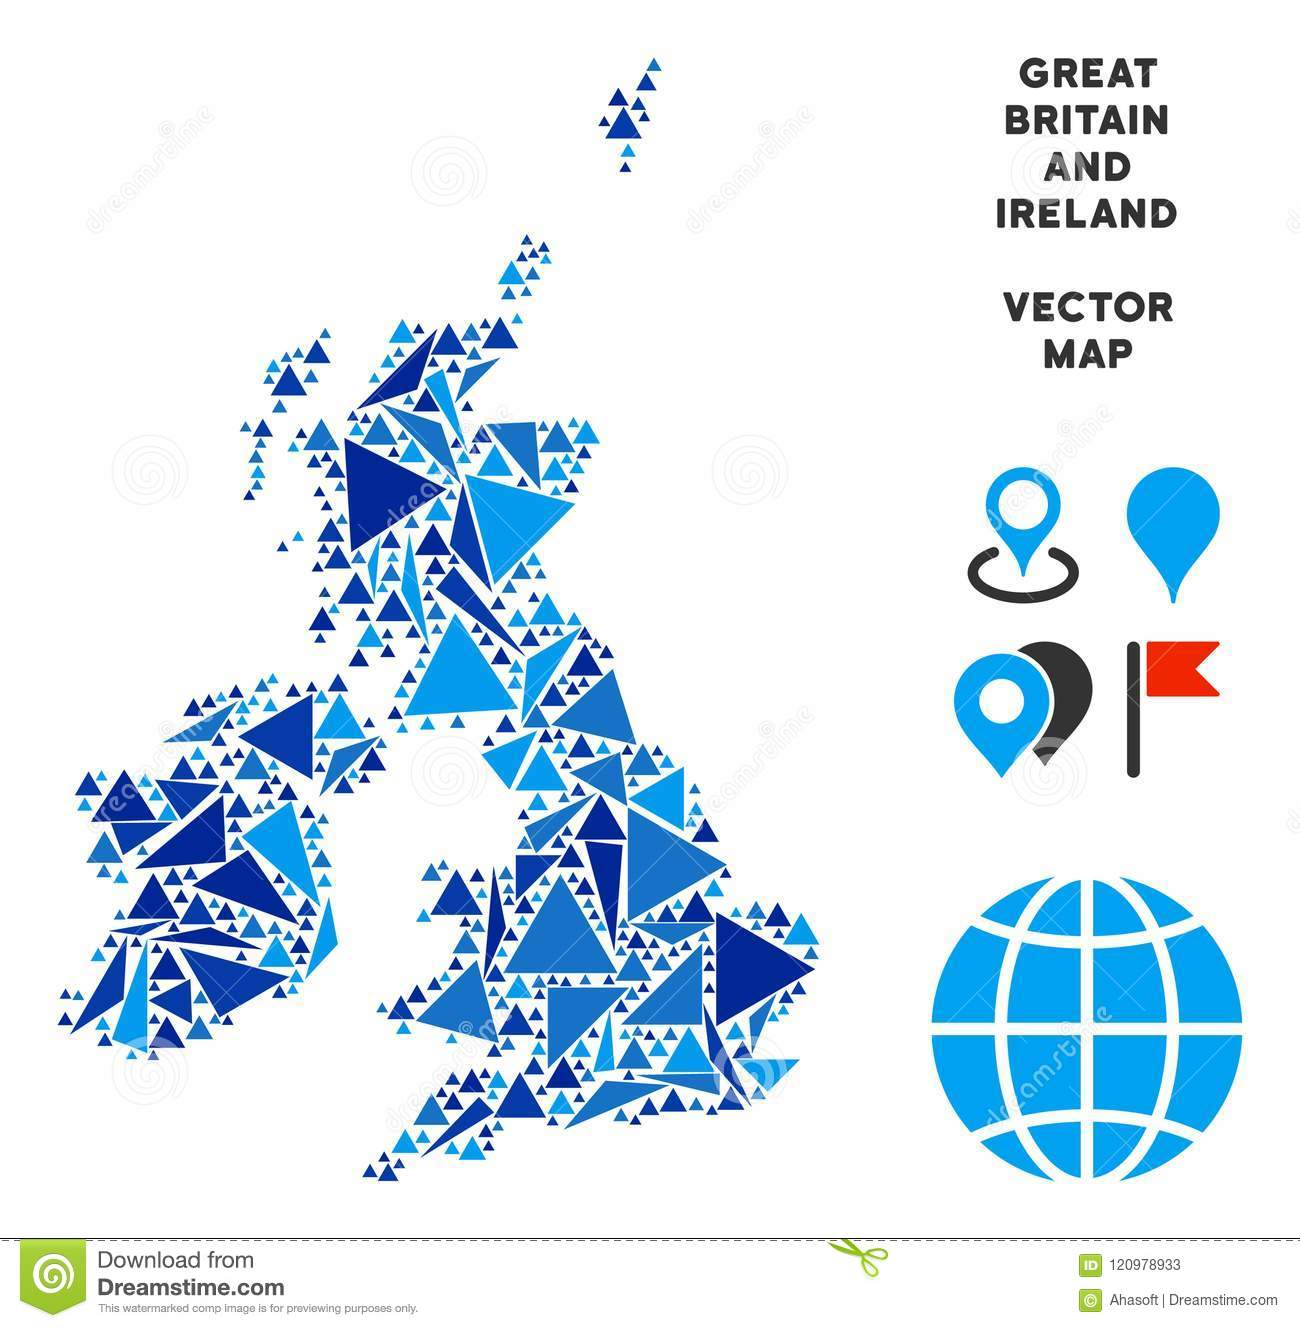 Britain And Ireland Map.Blue Triangle Great Britain And Ireland Map Stock Vector